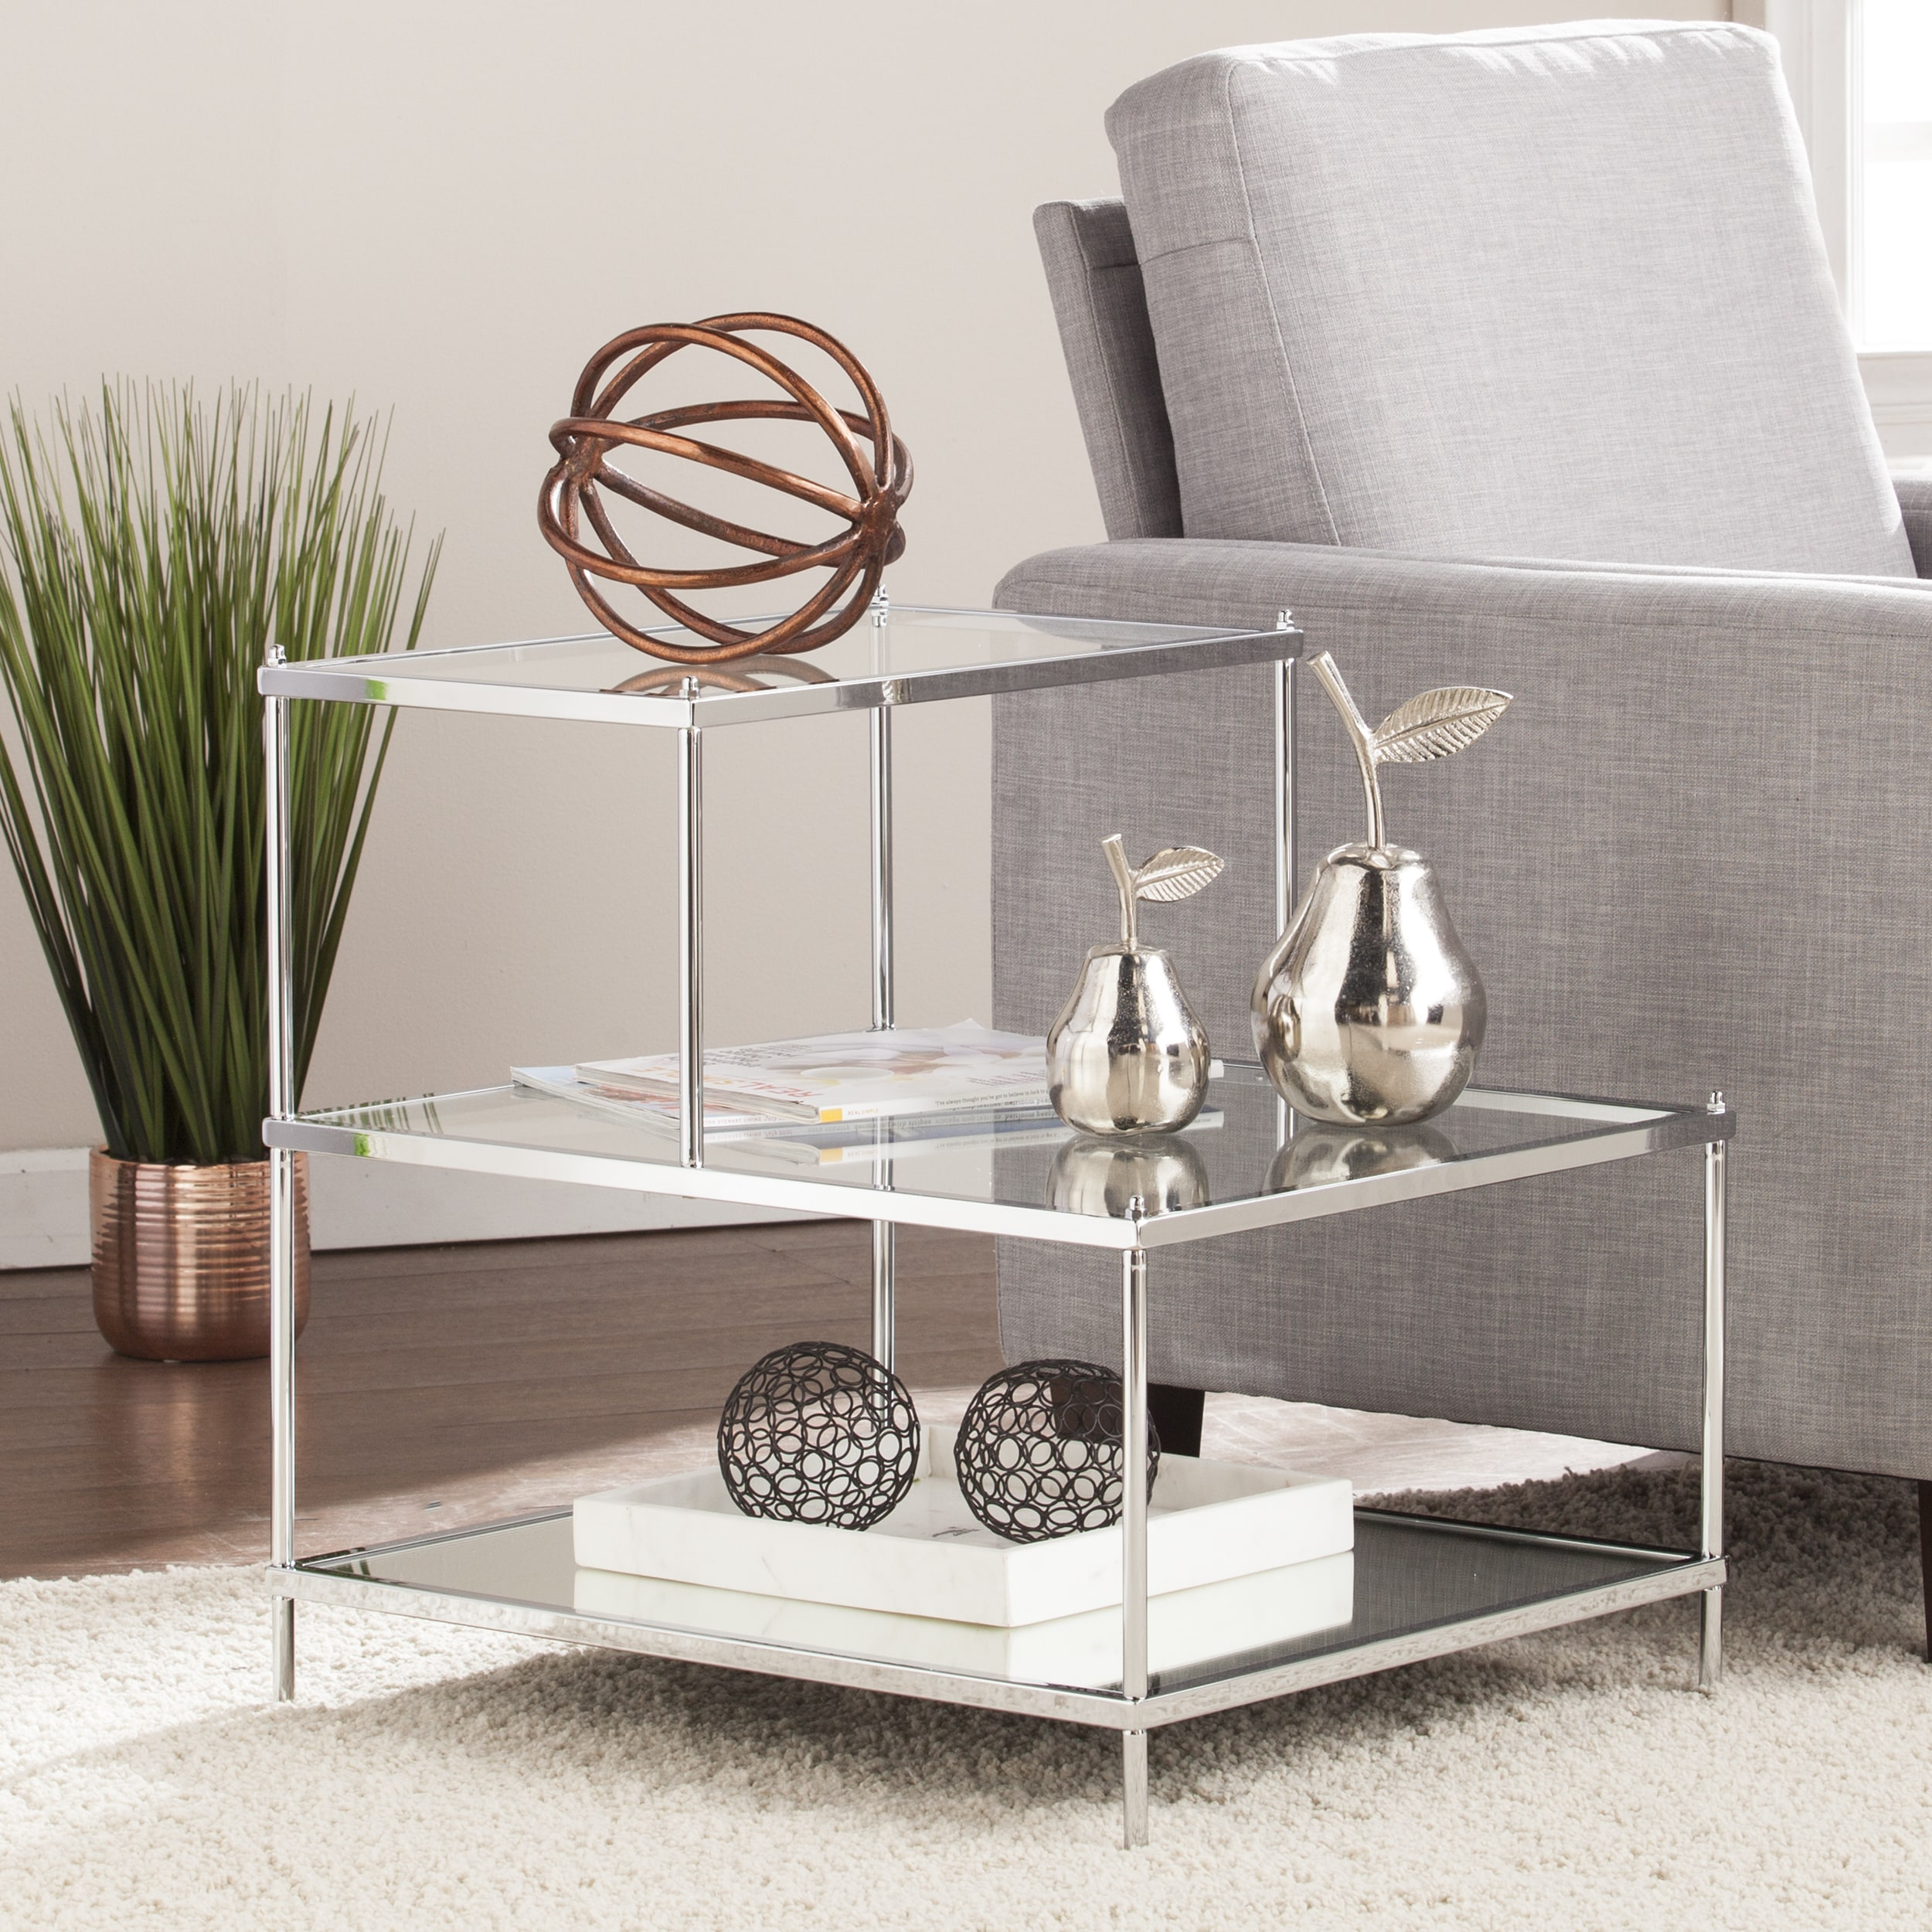 silver orchid olivia glam mirrored accent table chrome small with shelves lenovo livingroom side tables west elm patio furniture corner dining and chairs garden set sofa futon